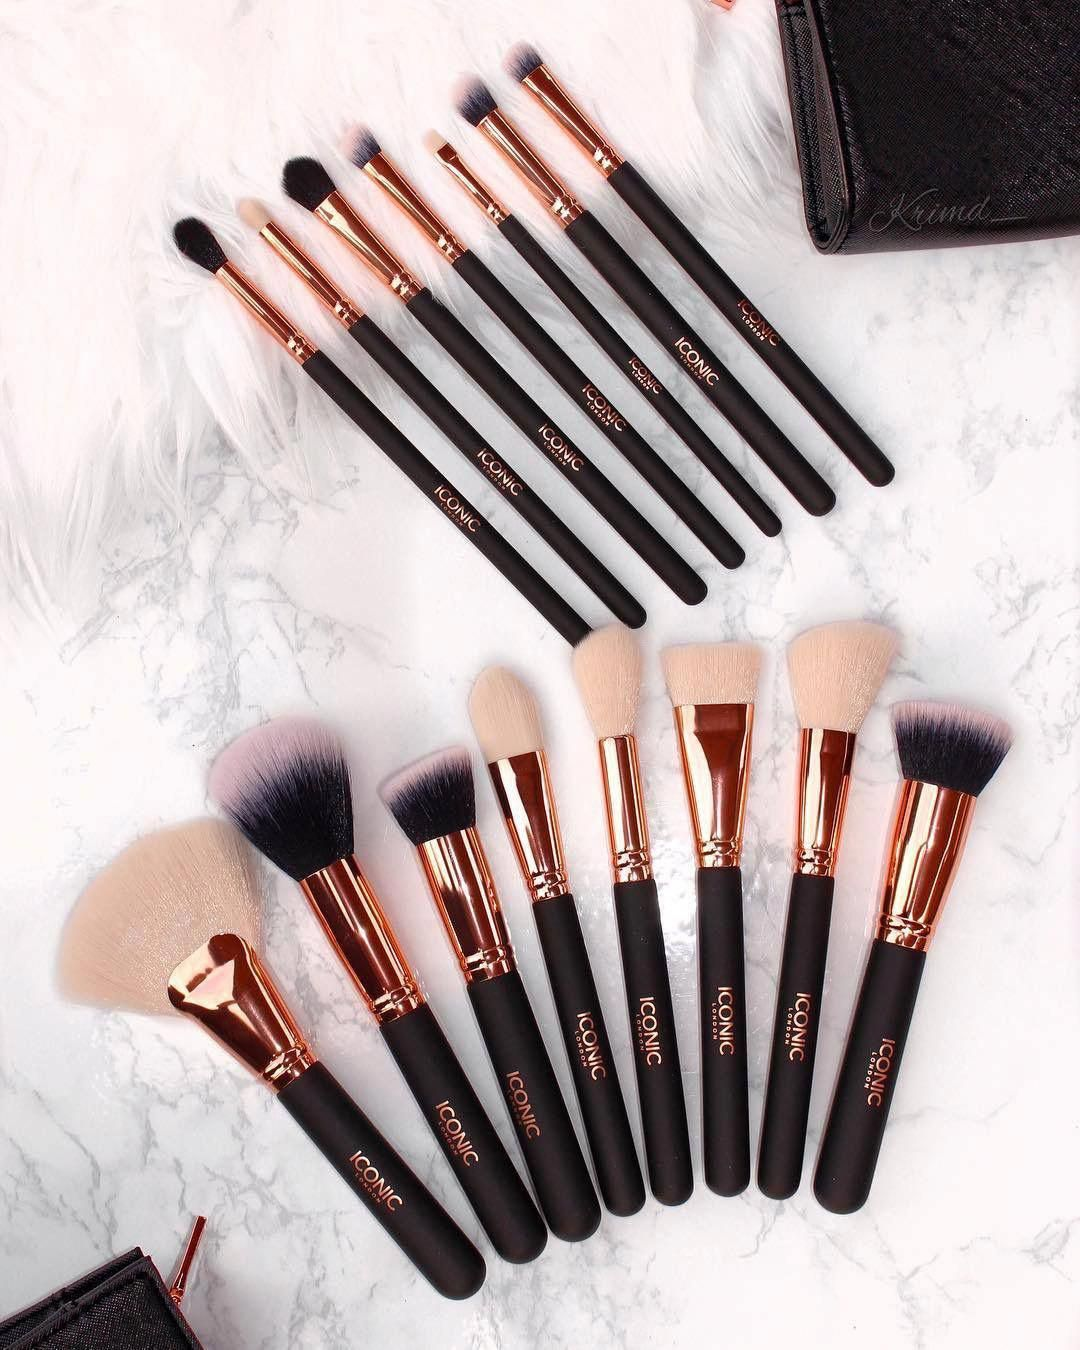 Love These Great Makeup Tools Products Image 5338 Makeuptoolsproducts Makeup Tools Products Unicorn Makeup Brushes Makeup Brush Set